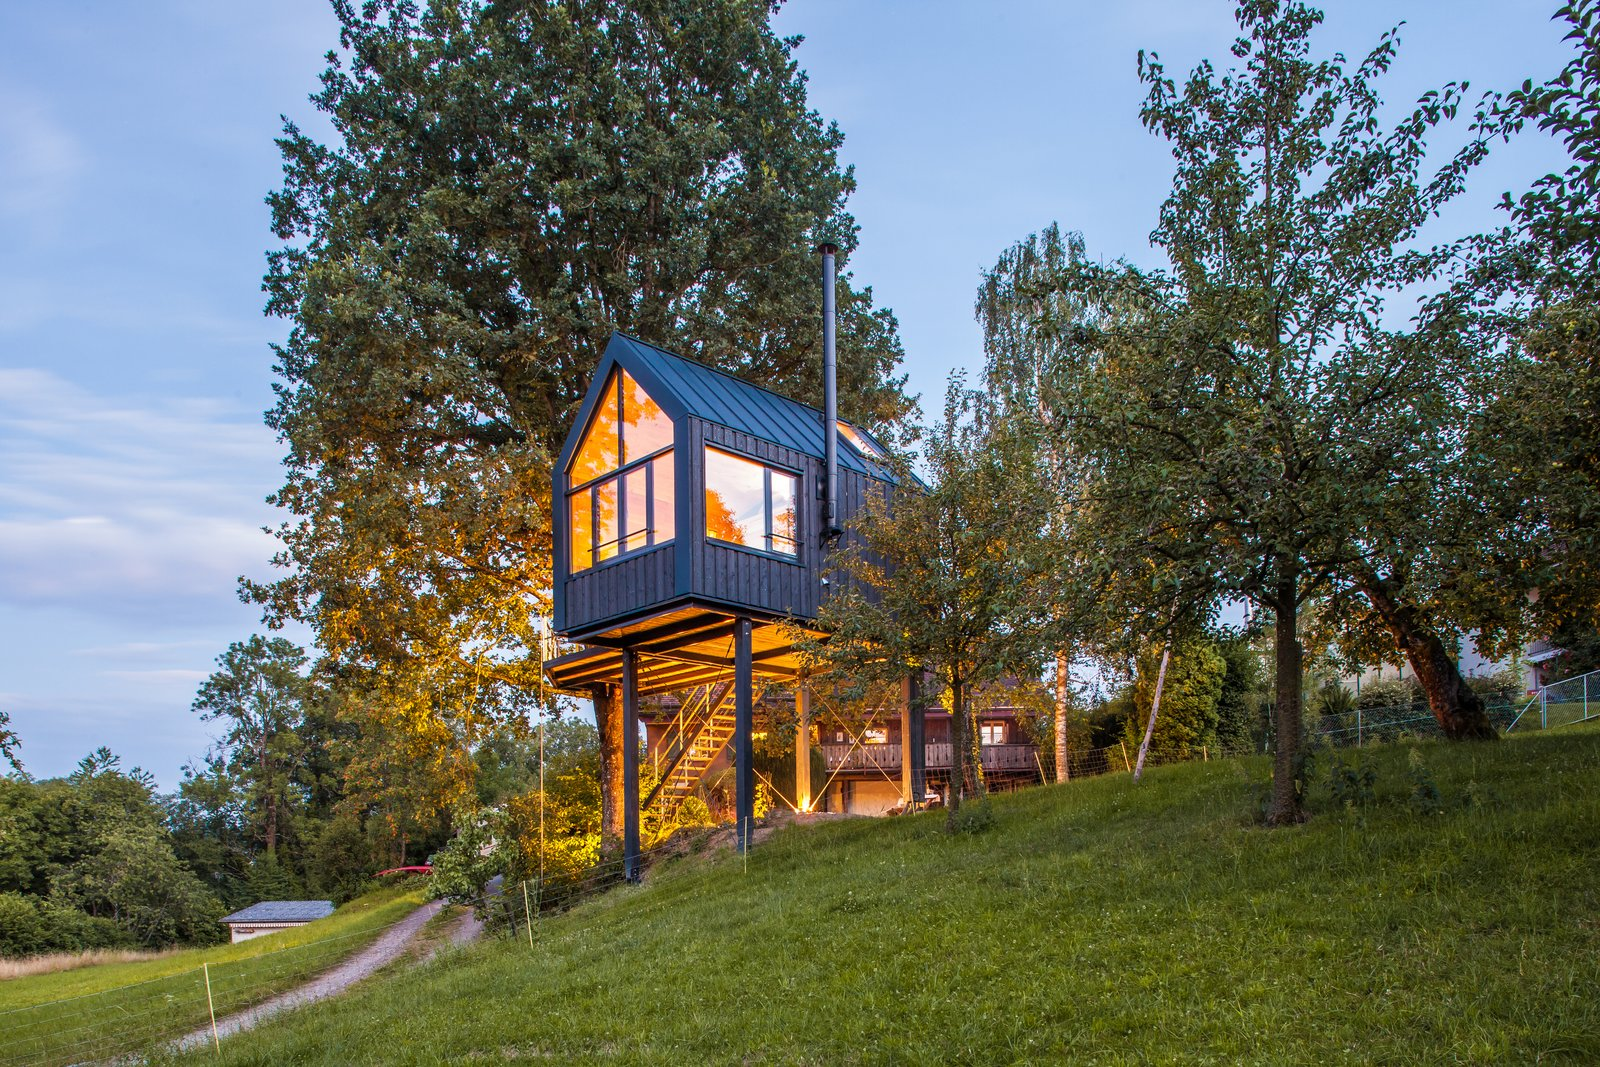 Exterior, Gable RoofLine, Prefab Building Type, Treehouse Building Type, Metal Roof Material, House Building Type, Wood Siding Material, and Tiny Home Building Type The petite prefab cabin only took eight days to assemble once arriving to Switzerland.  Best Photos from This Prefab Tree House Took Just 8 Days to Assemble